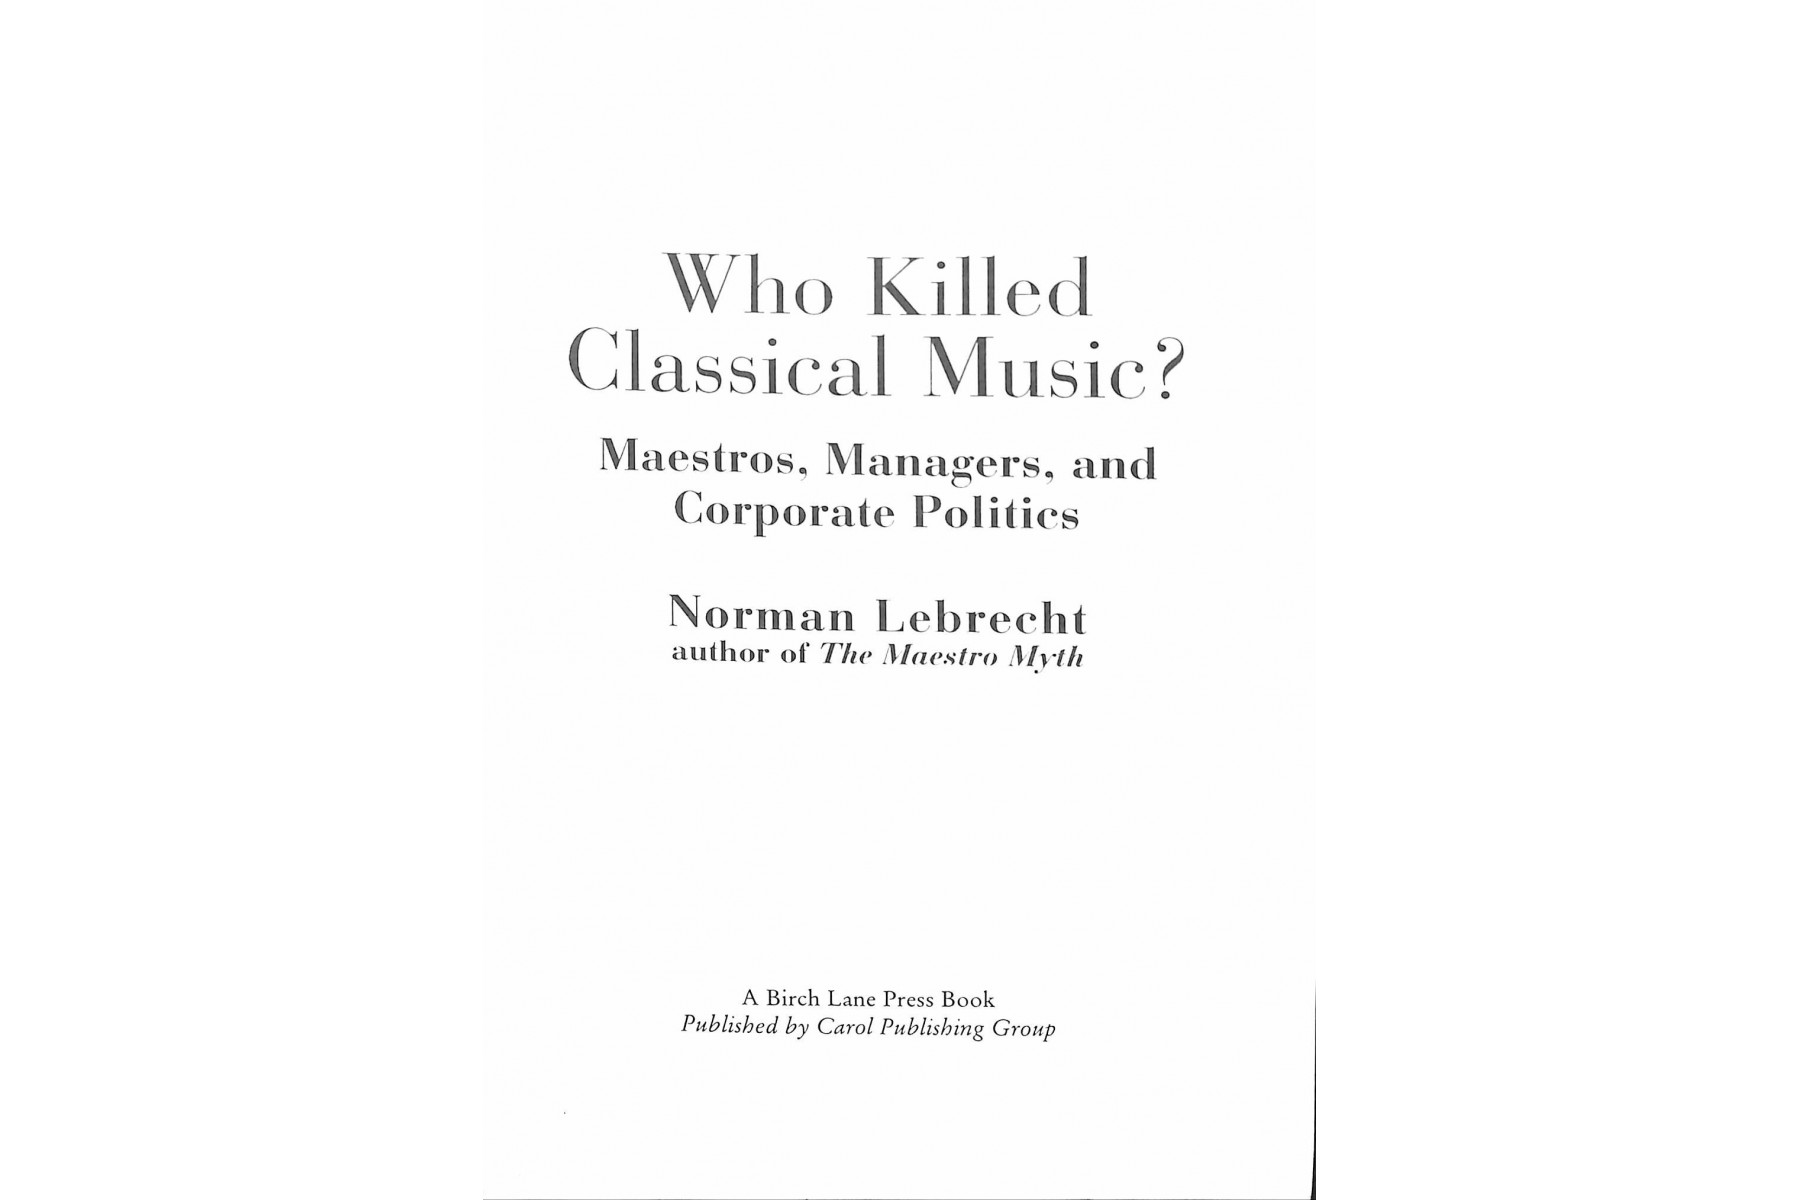 Who Killed Classical Music?: Maestros, Managers, and Corporate Politics